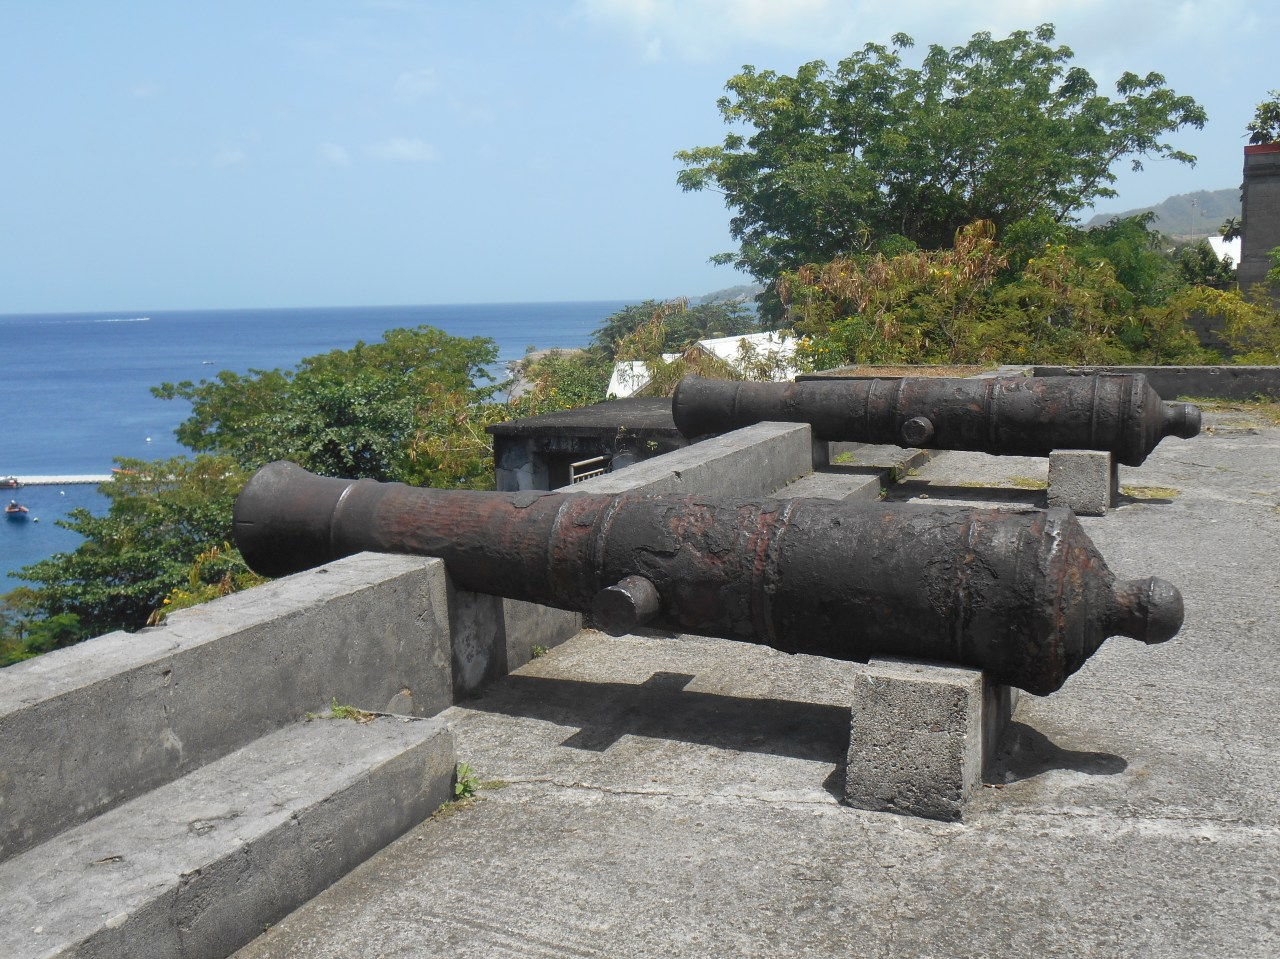 canons-saint-pierre-martinique.jpg